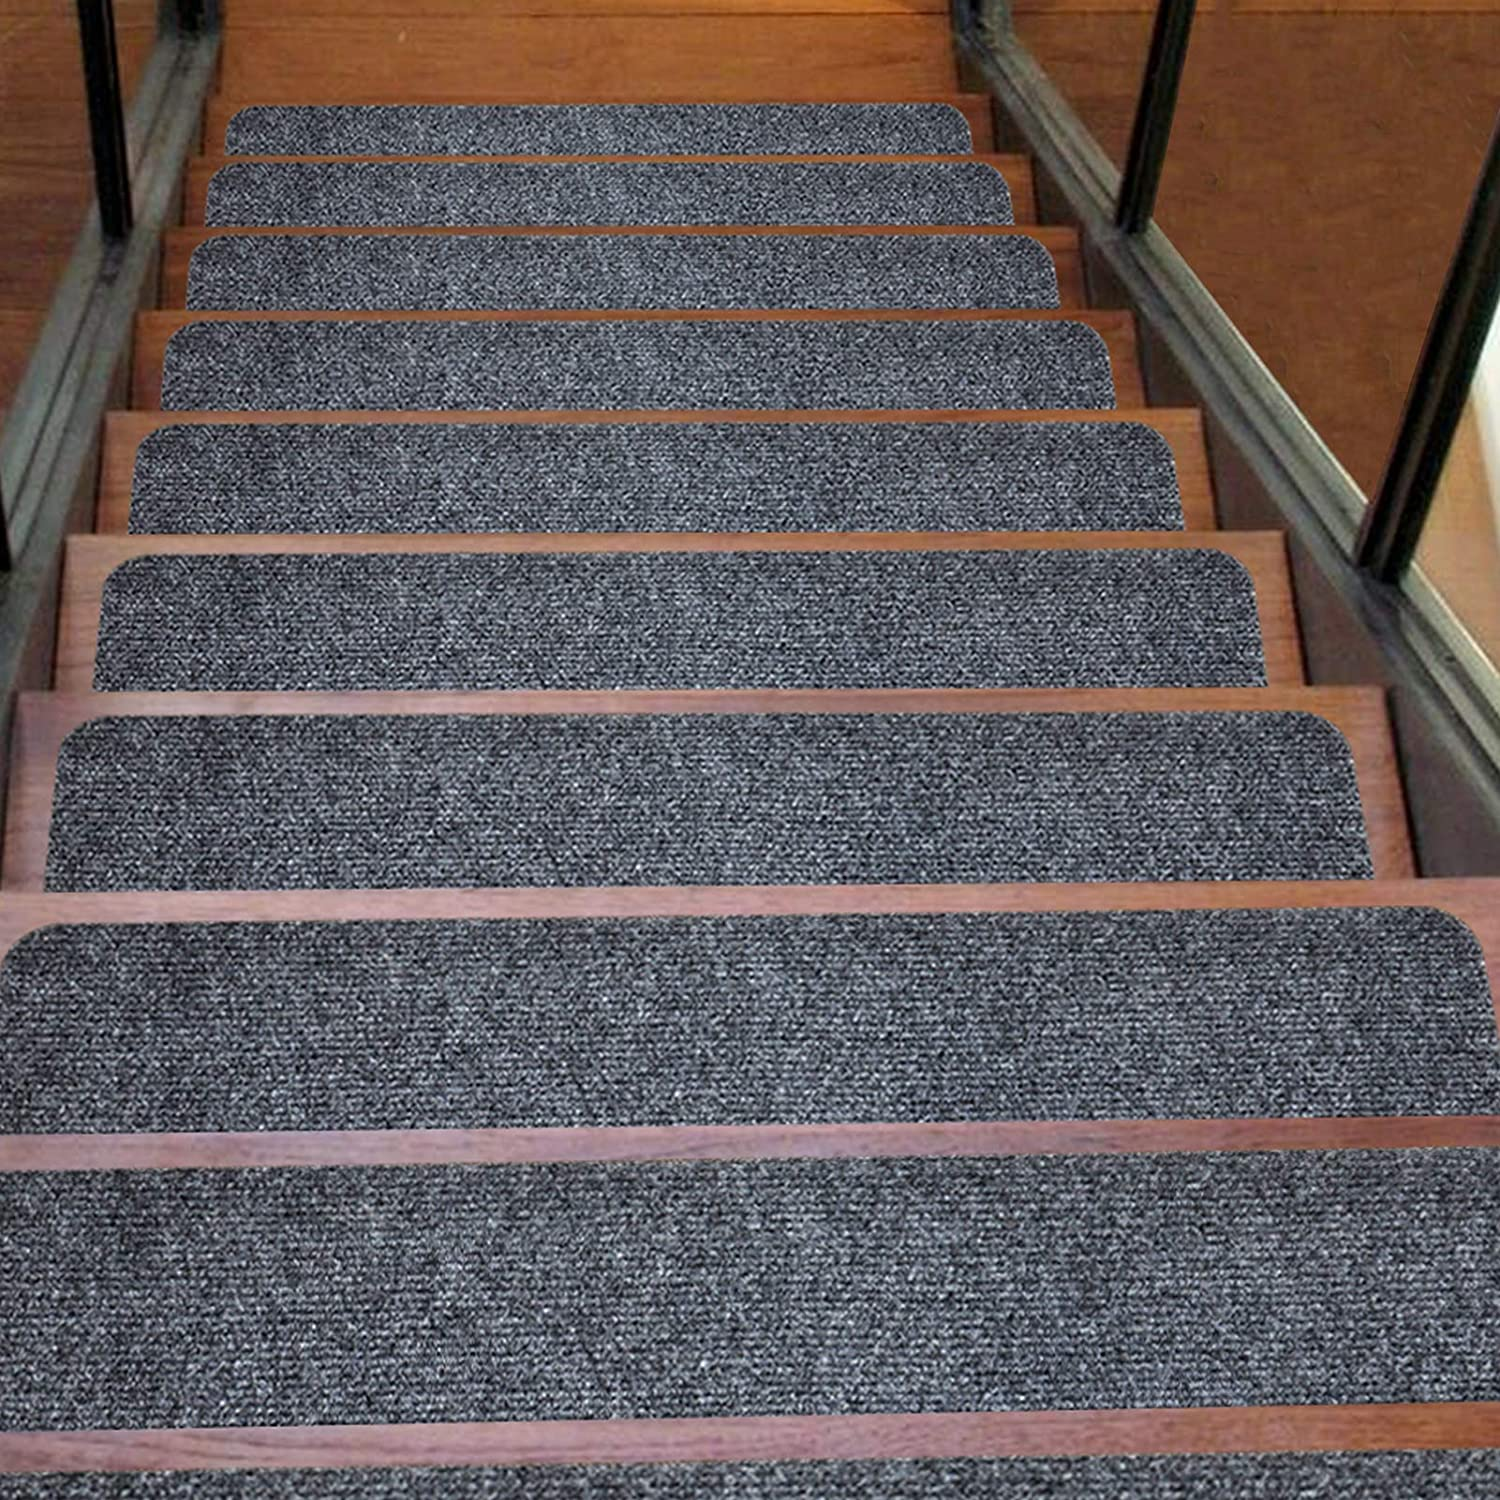 Kozyfox Carpet Stair Treads Non Discount is also underway Wooden Slip Steps for New color 8